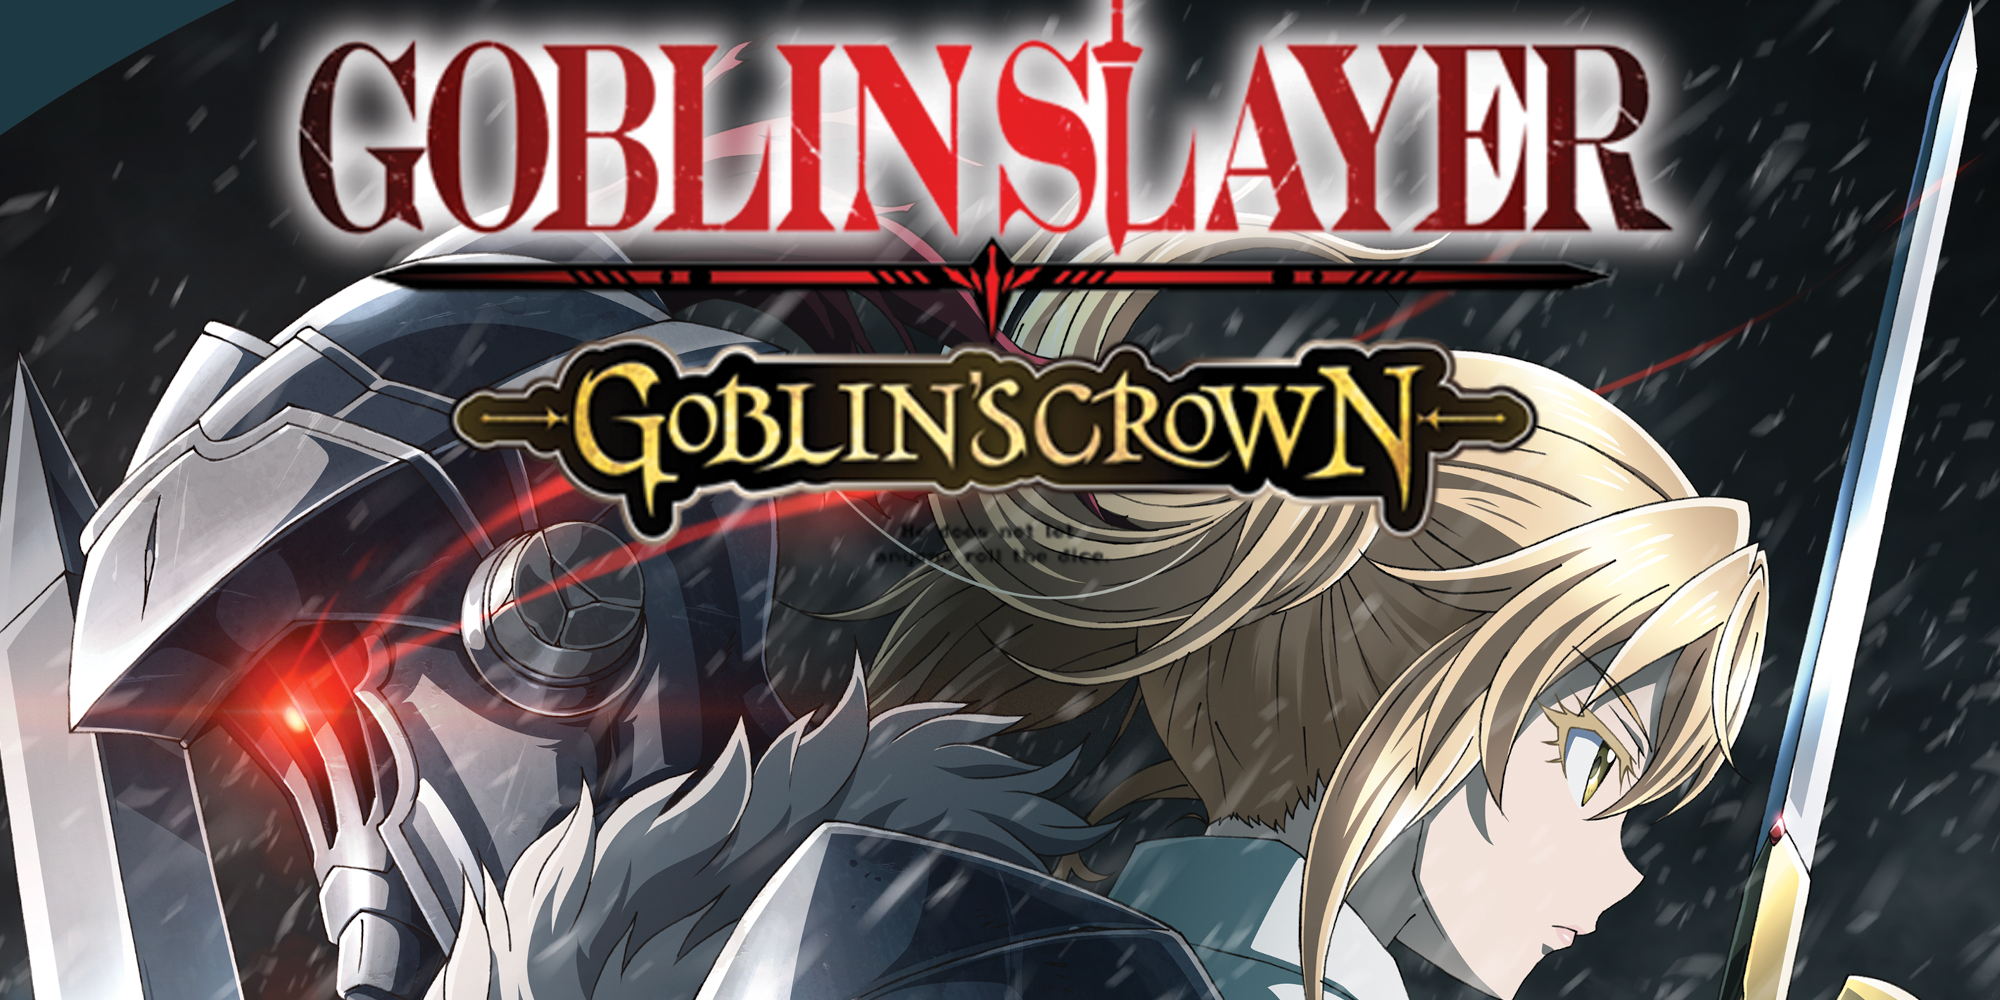 Featured image for Goblins Slayer: Goblins Crown [White Fox]